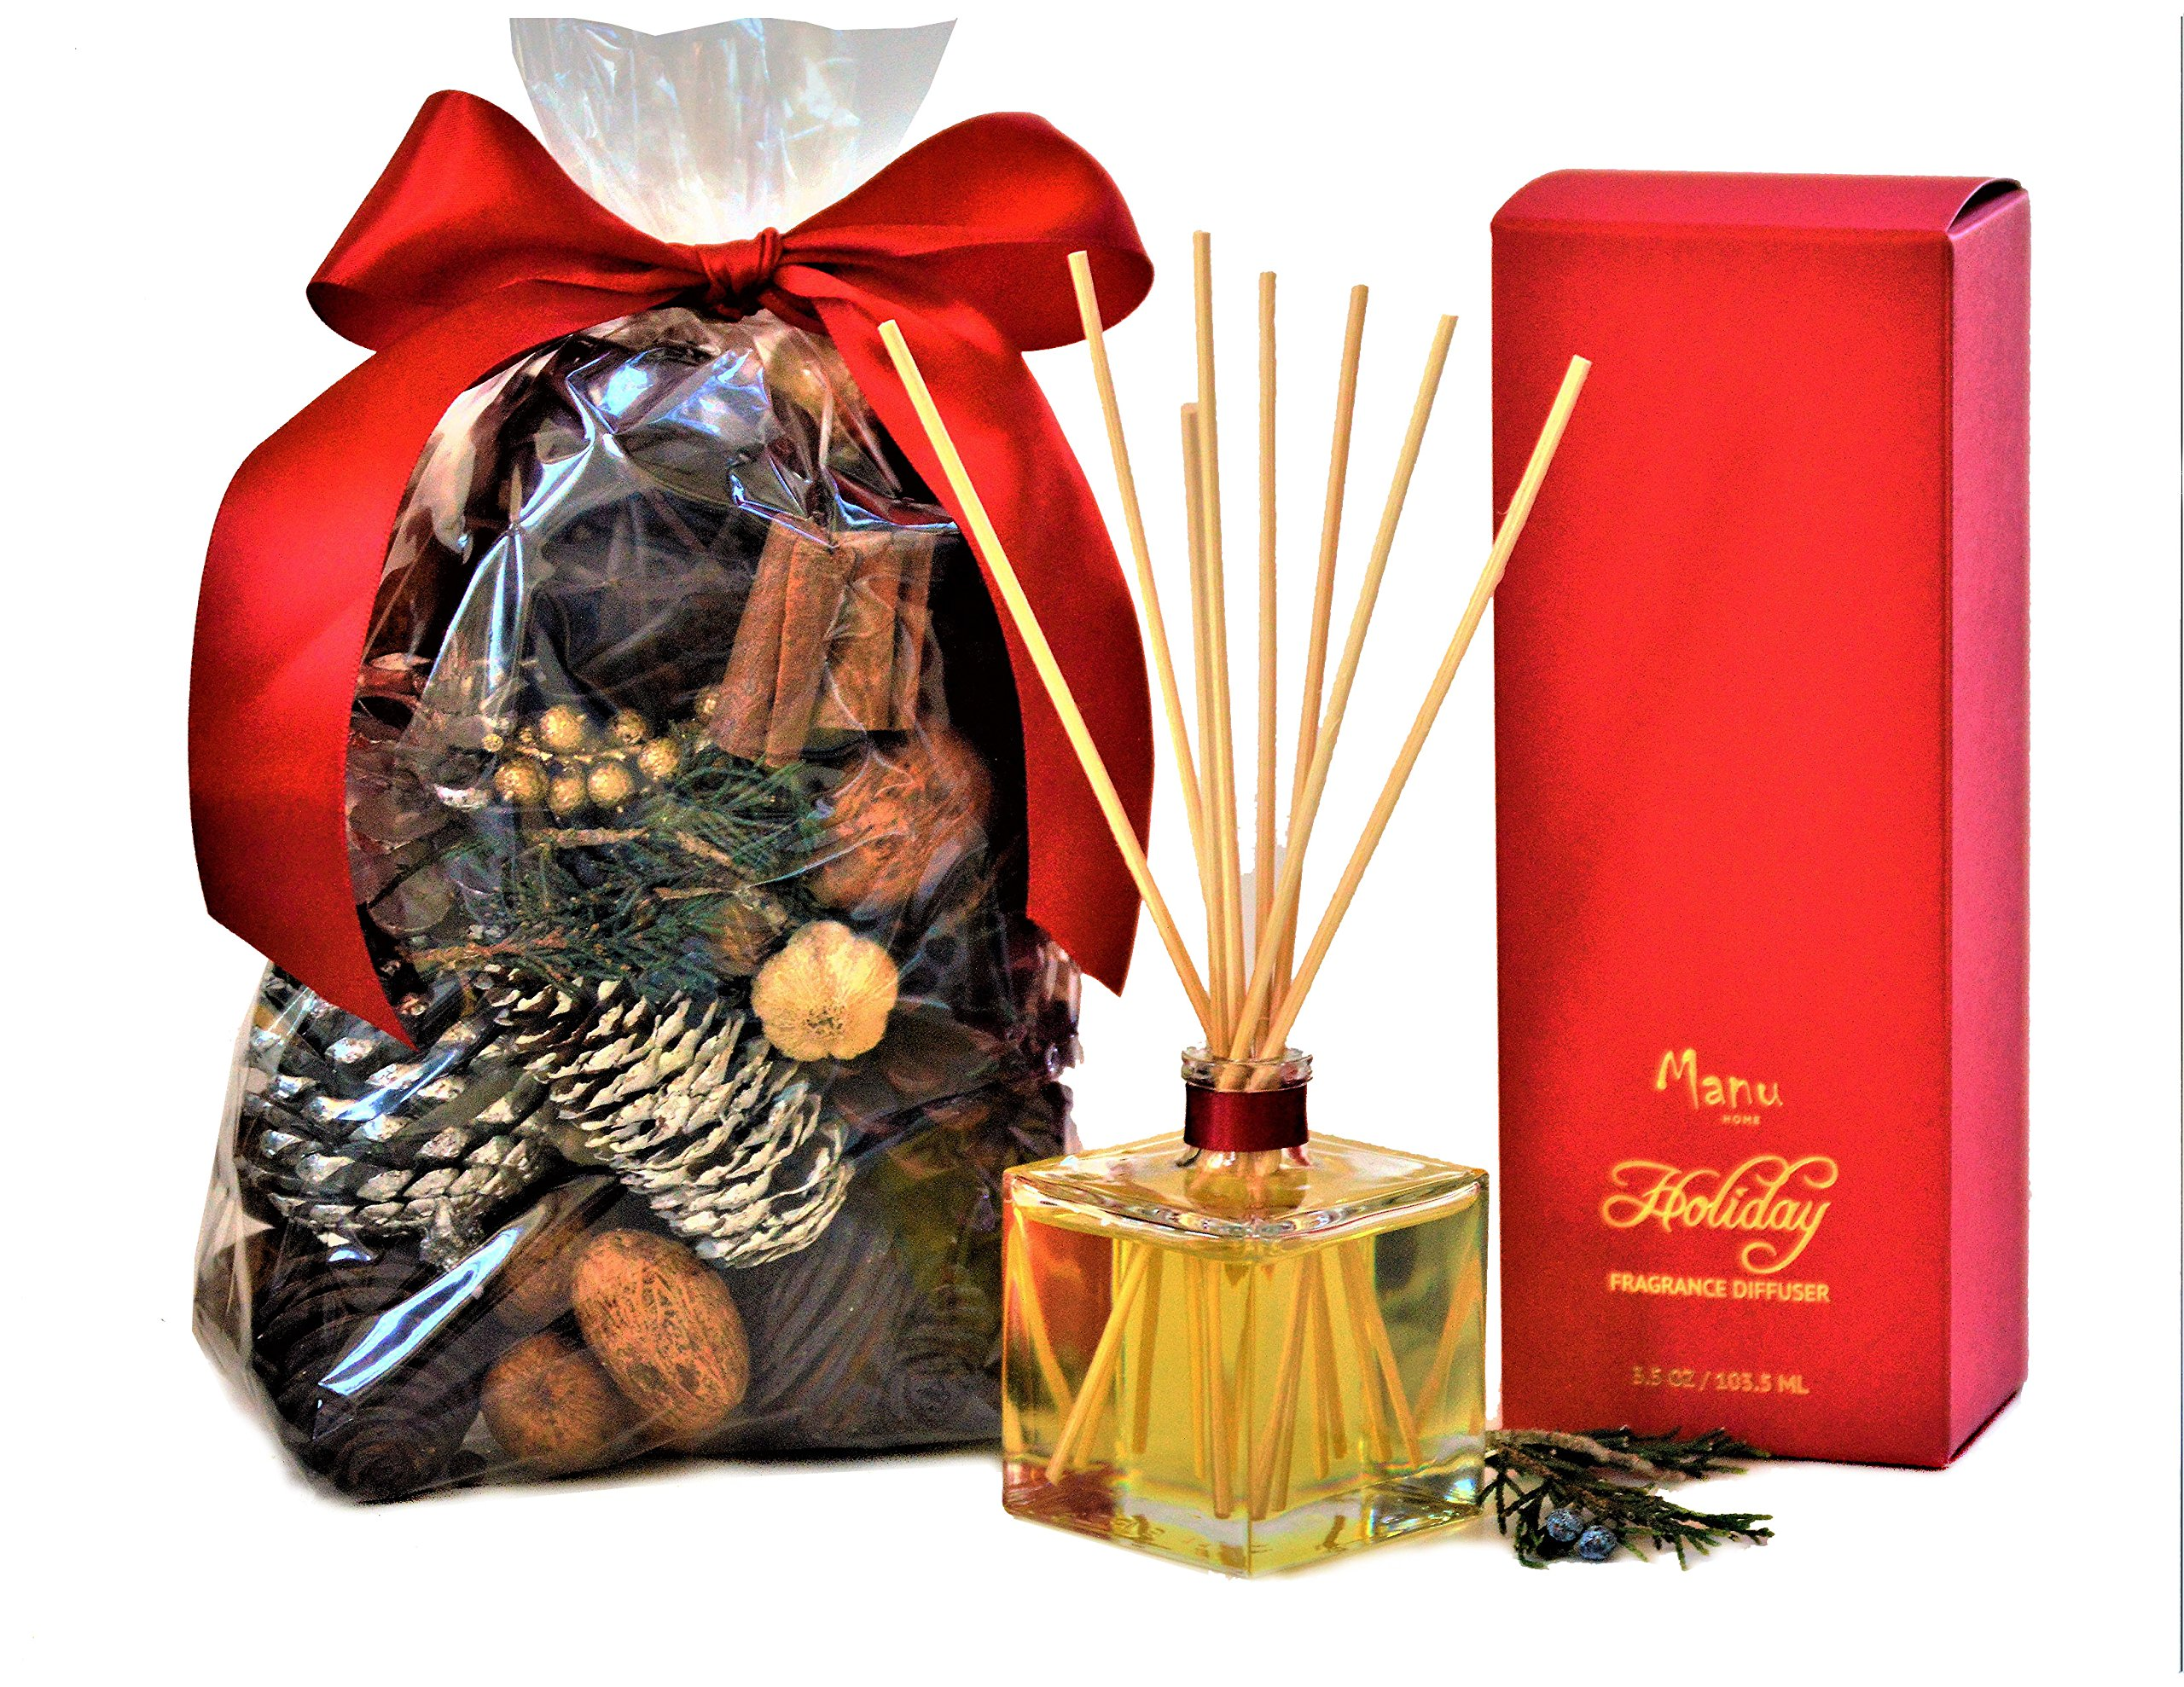 Manu Home Cinnamon & Clove Potpourri & Reed Diffuser Set~ Our Cinnamon Scent Offers a Holiday Glow with The Spicy Warmth of Real Imported Cinnamon and a hint of Clove. by Manu Home (Image #1)